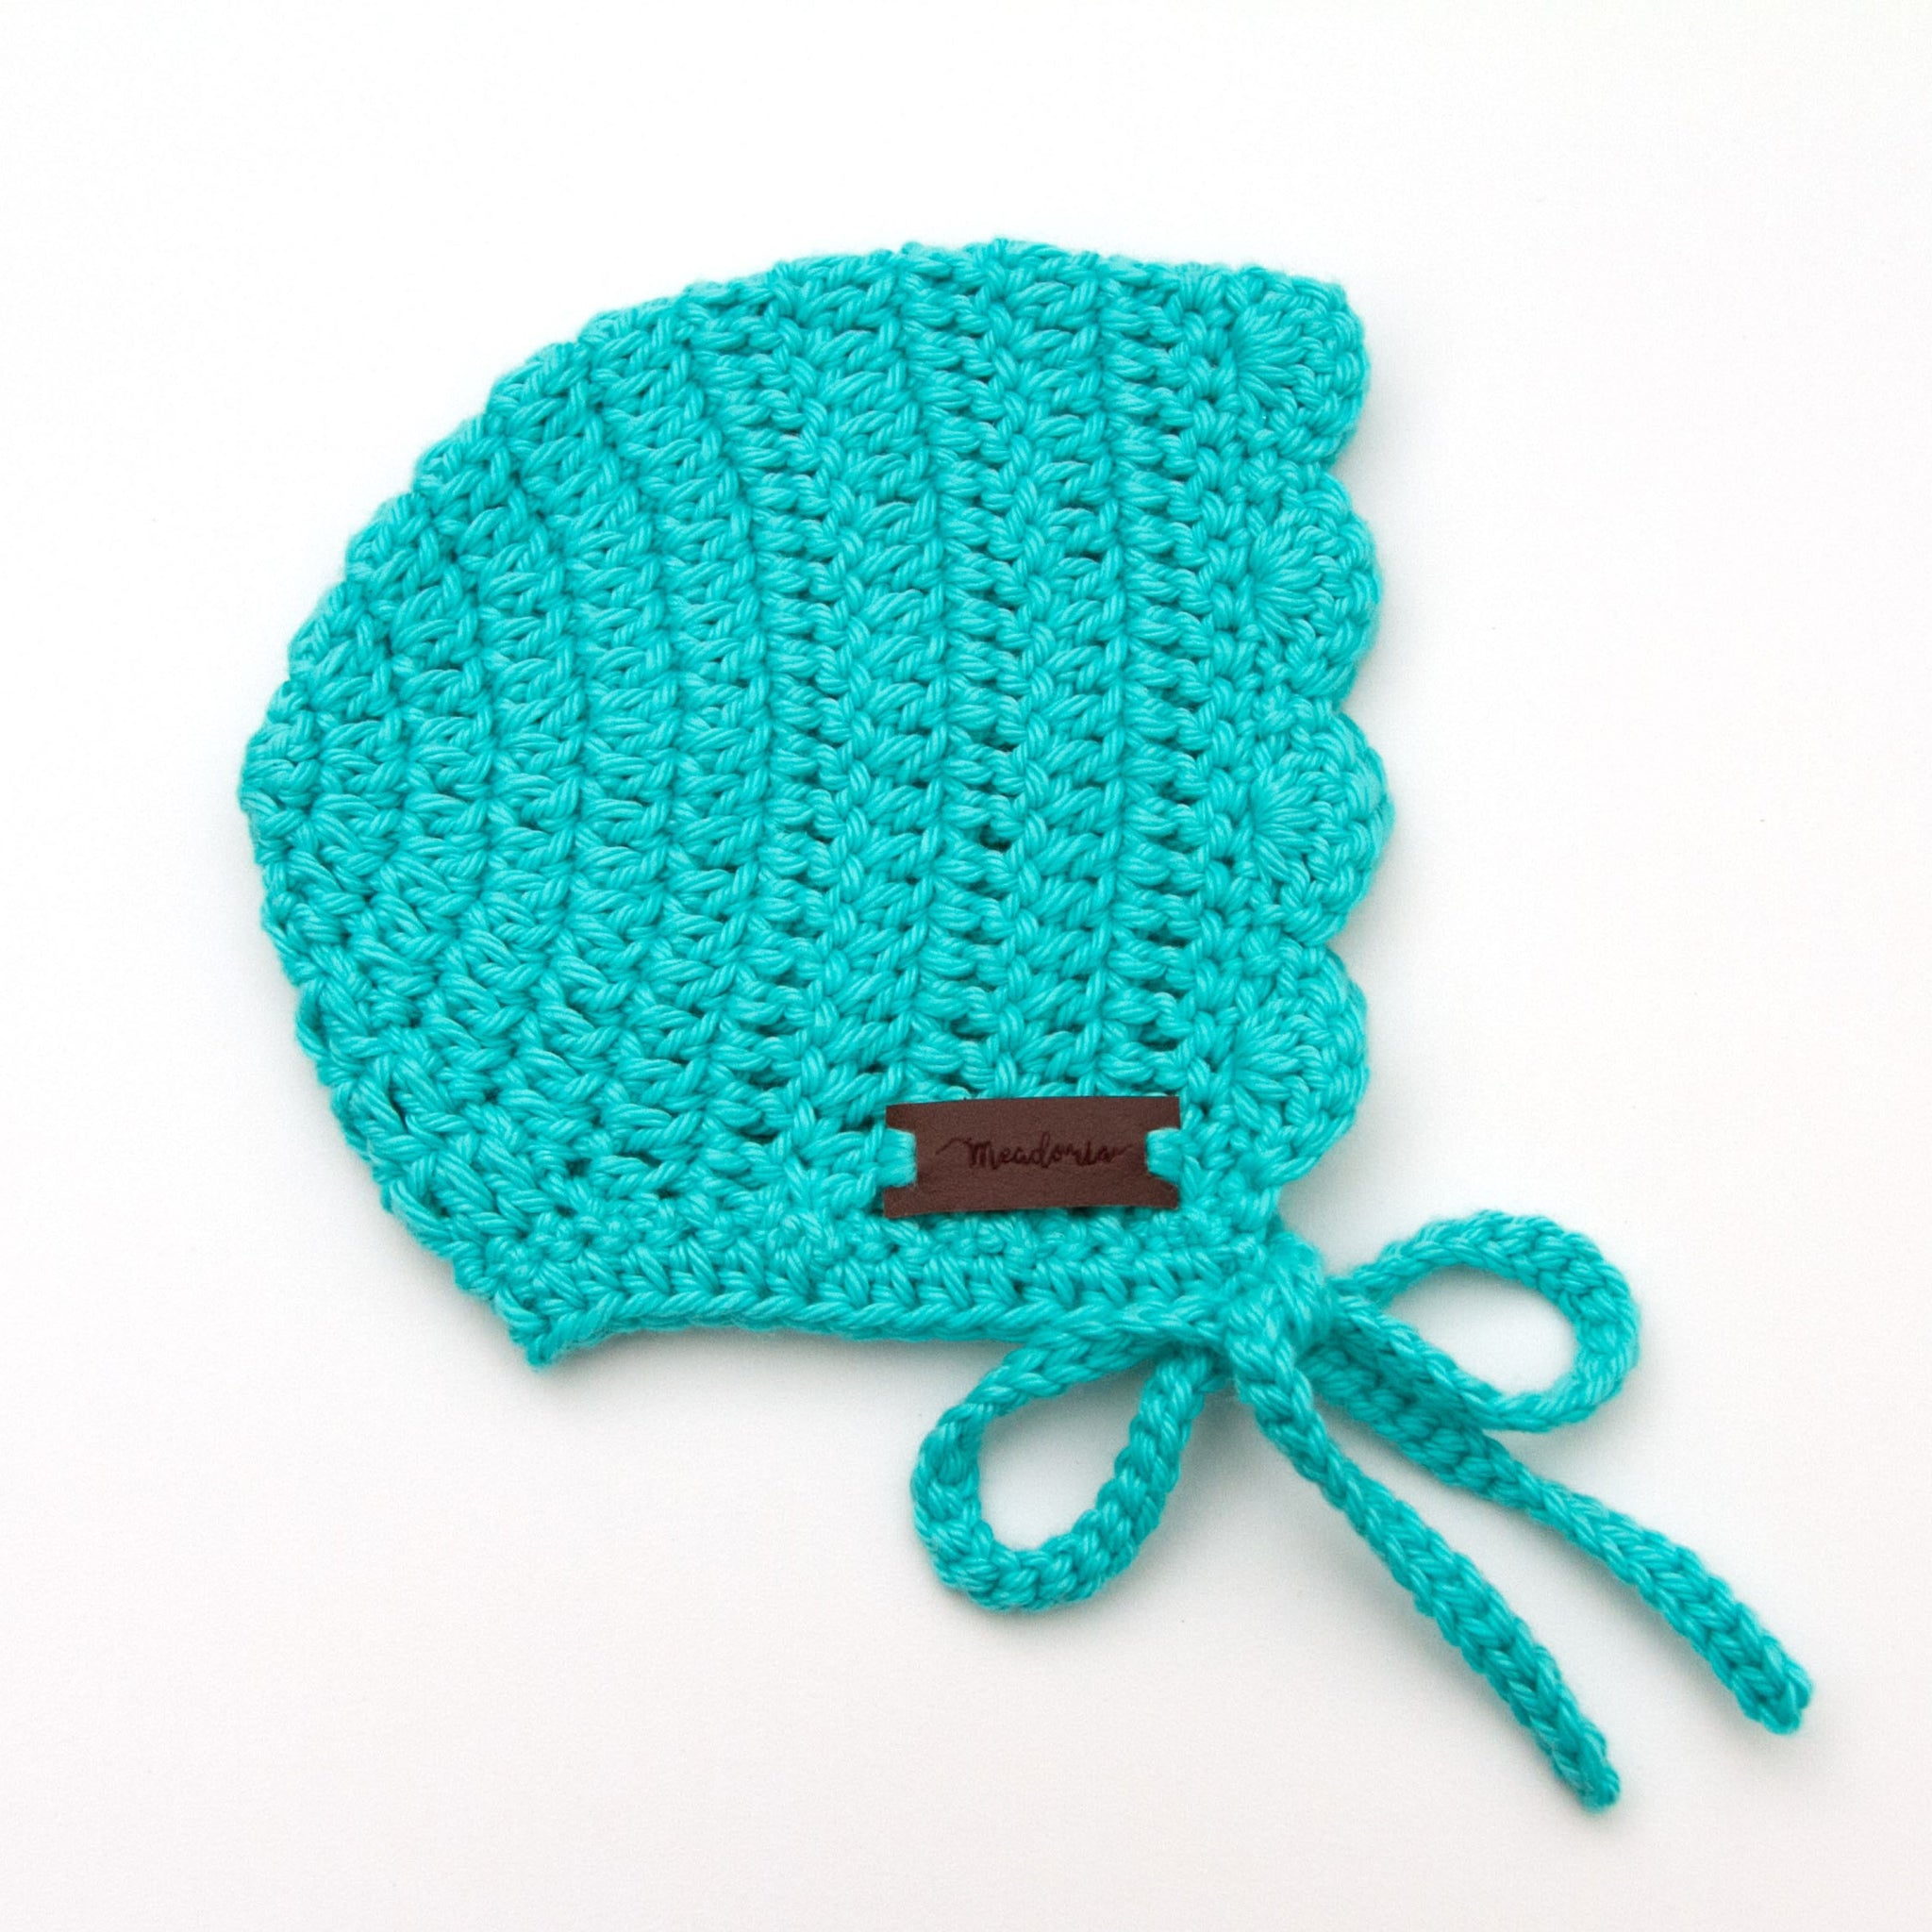 Crochet Cotton Ria Baby Bonnet Teal Blue